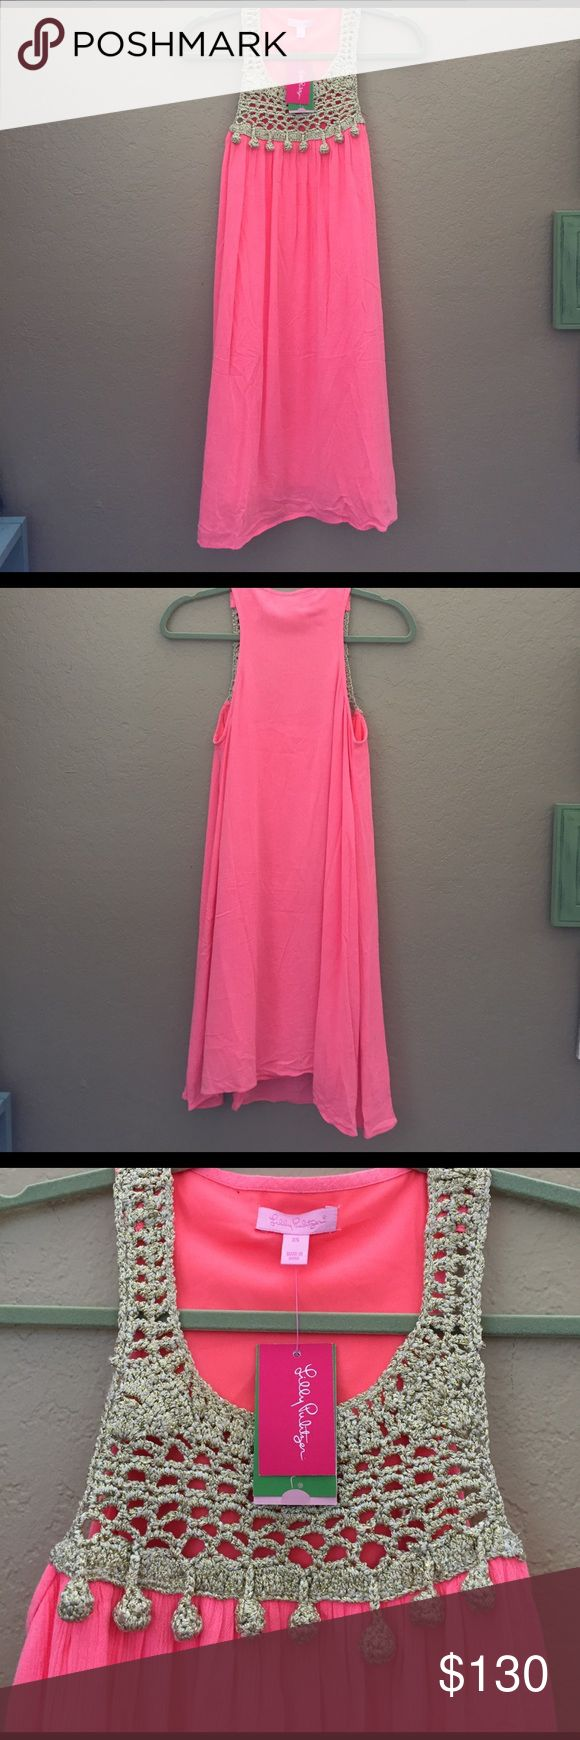 """⬇️Sunday Sale! NWT Lilly Pulitzer Dress - XS NWT Gorgeous Lilly Pulitzer Rachelle Dress, size XS. It's a pretty fluorescent coral color, """"Pink Sun Ray"""". Gorgeous metallic gold detail and pom poms at neckline. *Stock photo shown for modeling purposes only. The color is a much more vibrant pink* Lilly Pulitzer Dresses Mini"""